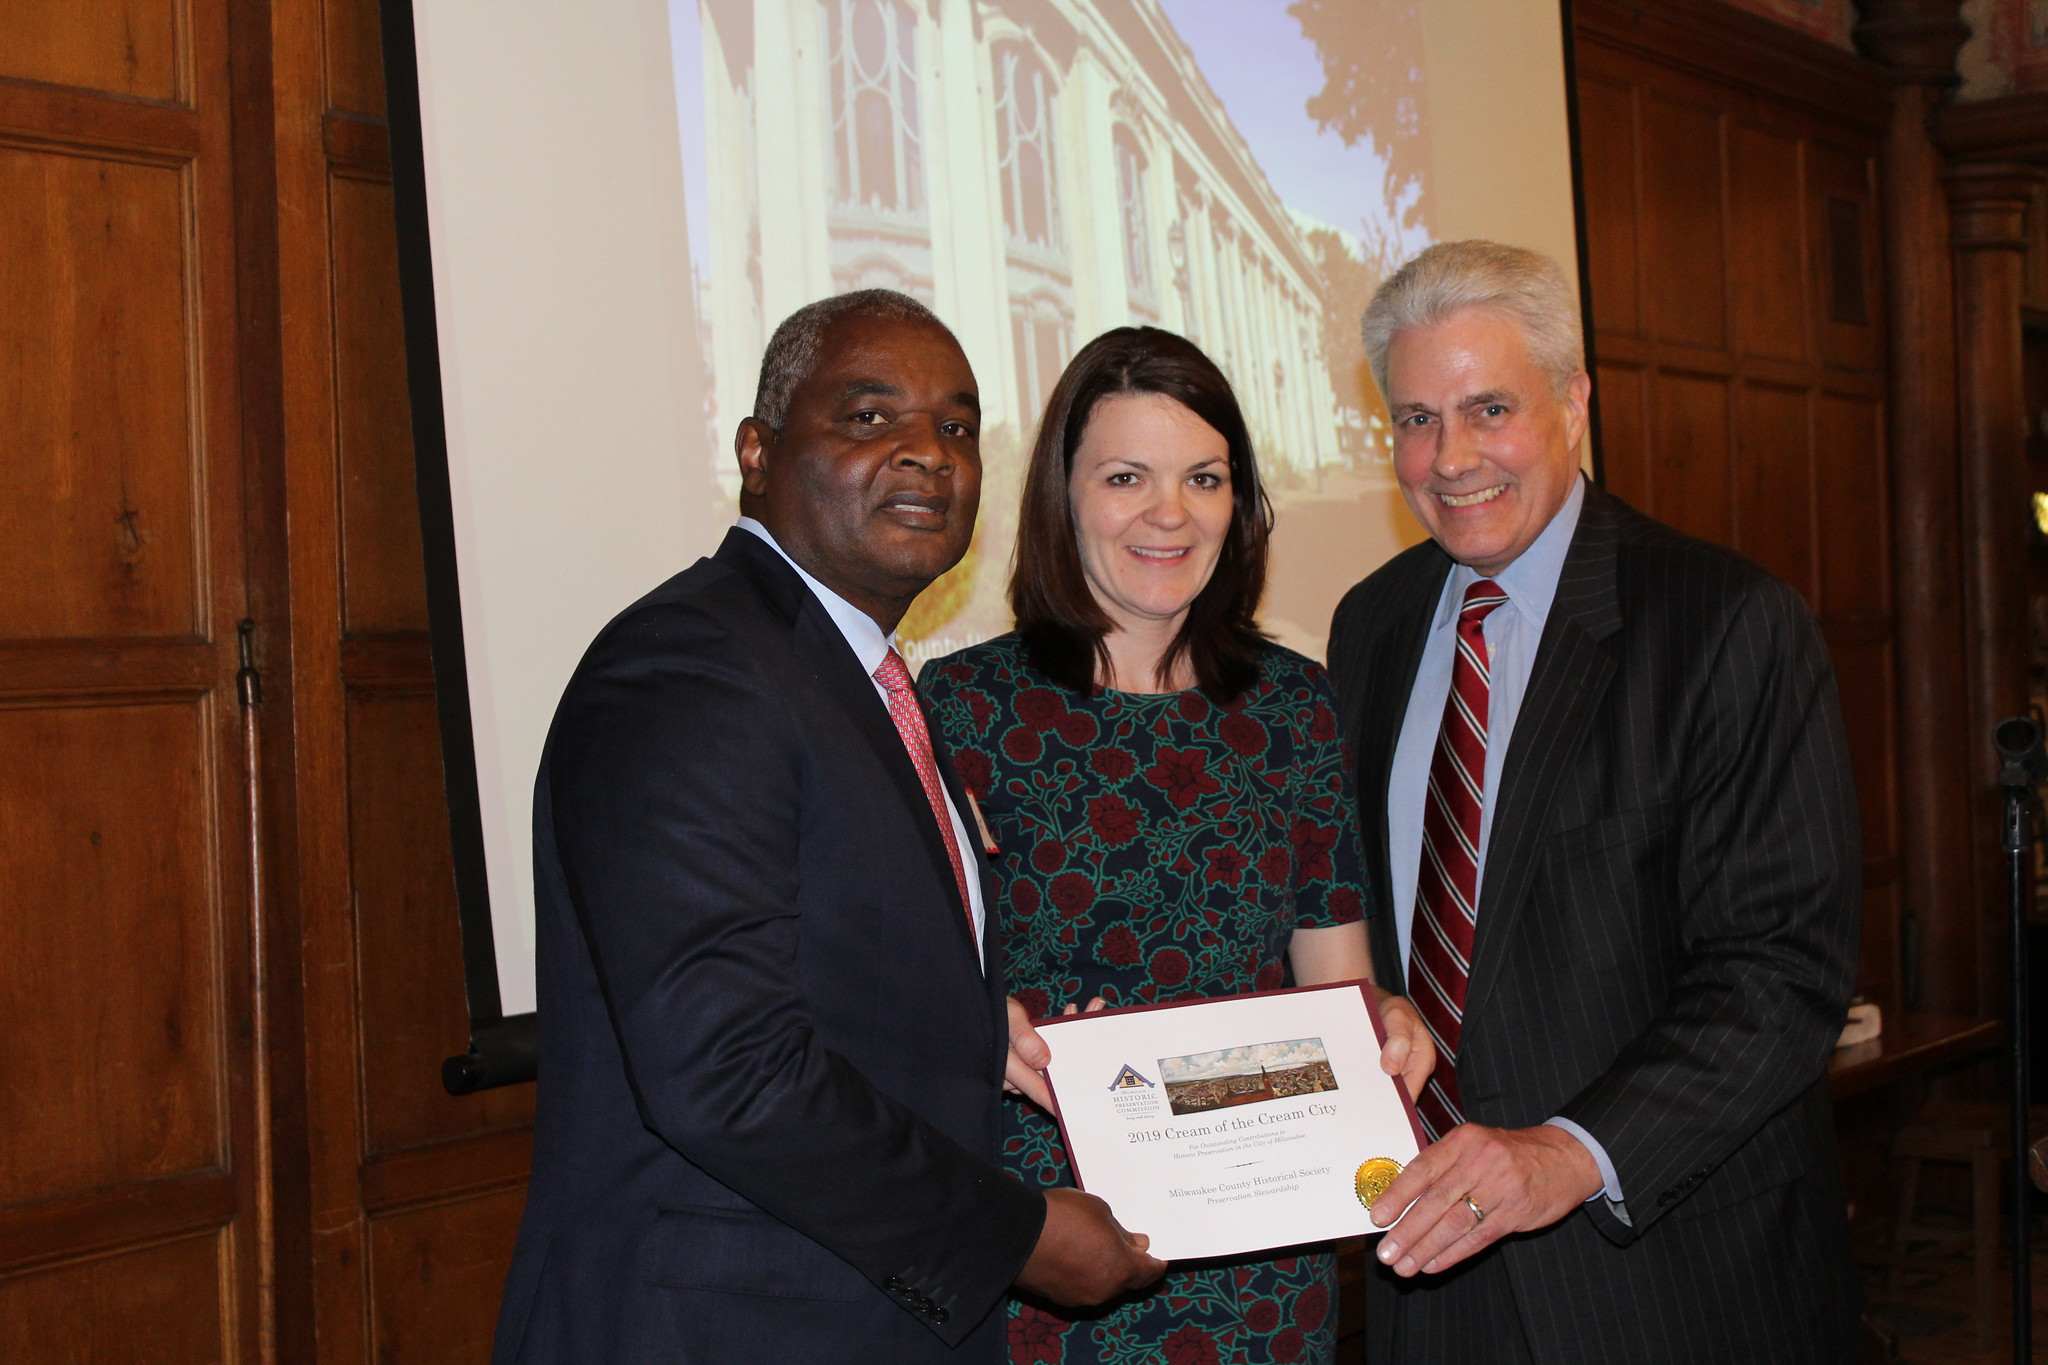 Alderman Robert Bauman (right) presents an award to Milwaukee County Historical Society past board chair Randy Bryant and executive director Mame McCully. Photo from the City of Milwaukee.